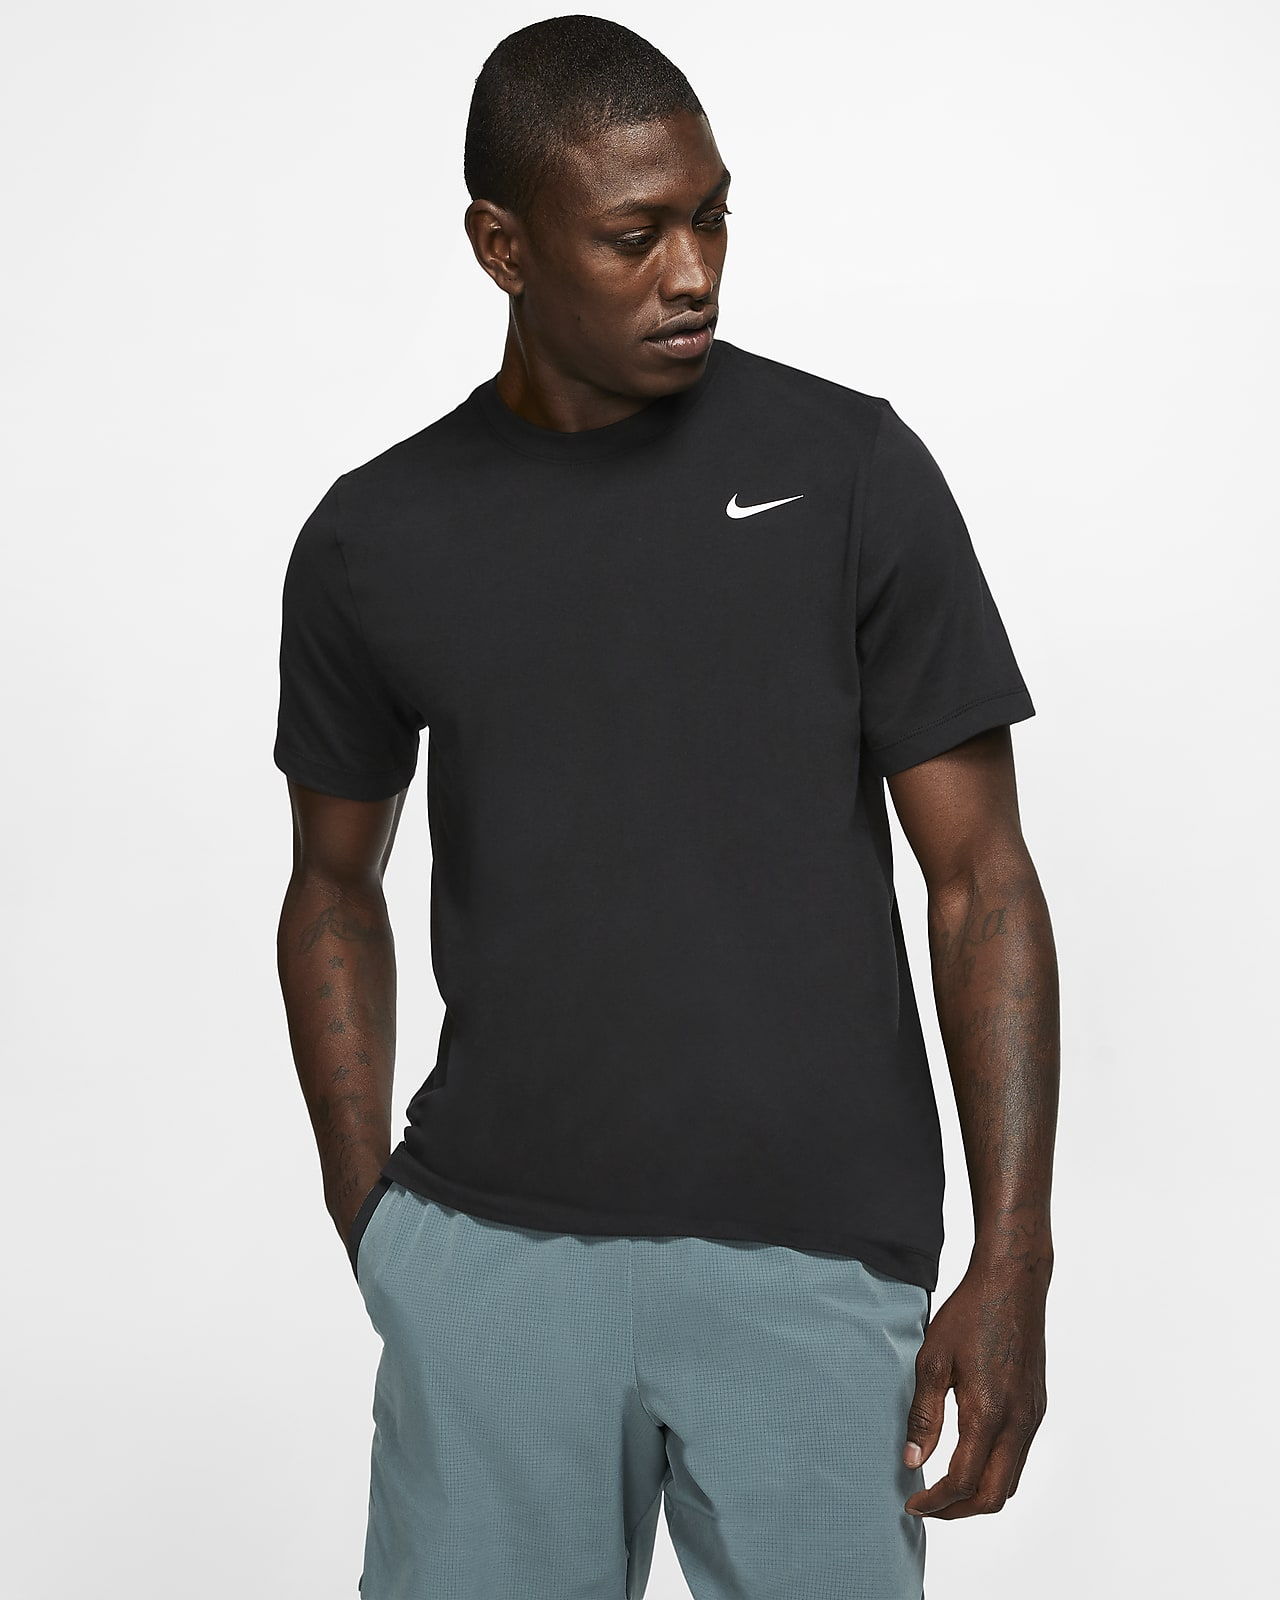 T-shirt da training Nike Dri-FIT - Uomo